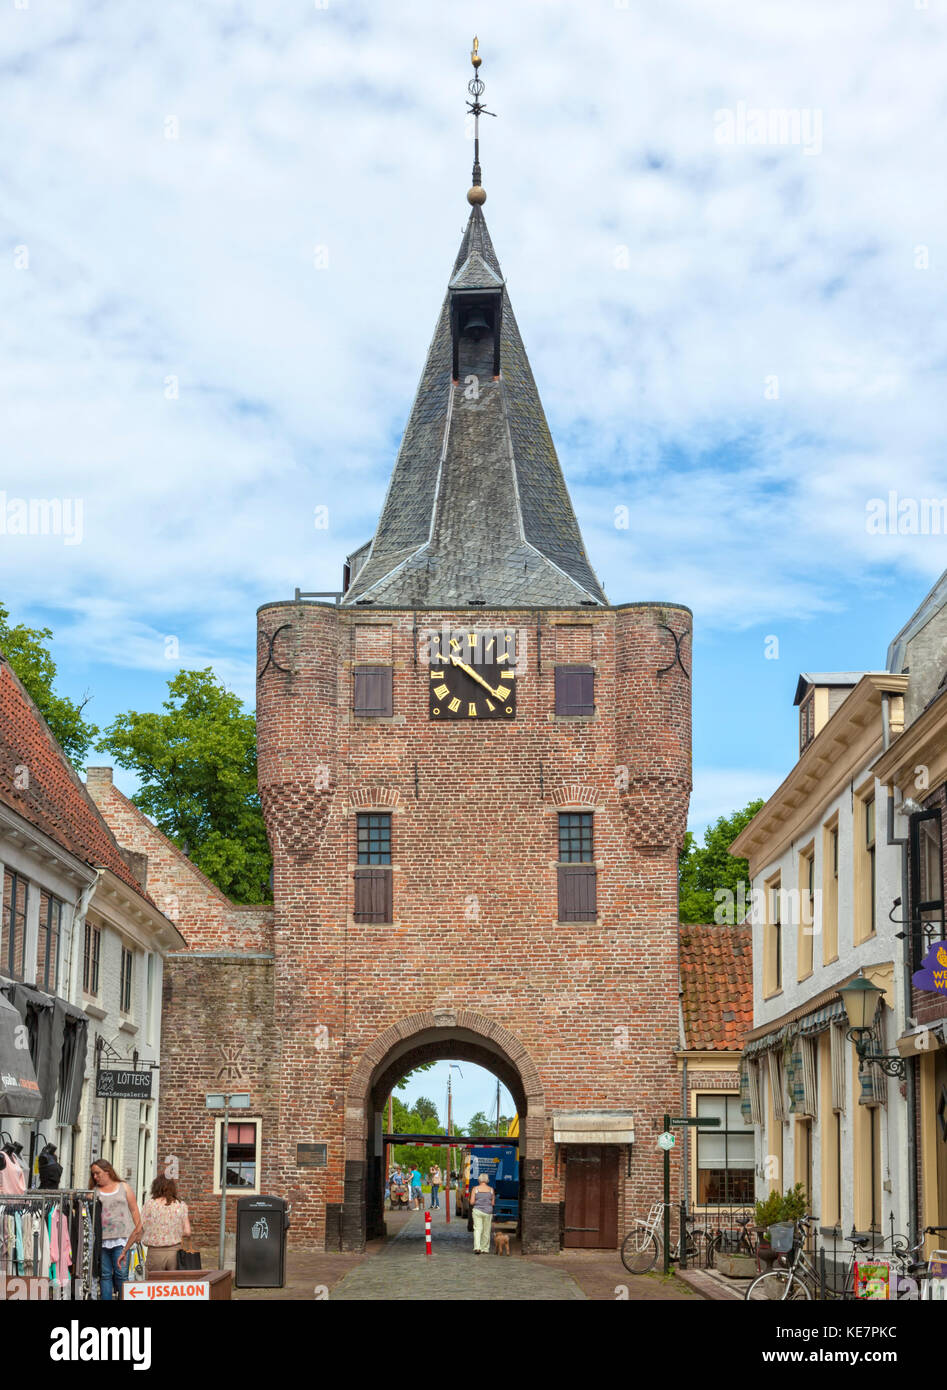 Vischpoort city gate at Elburg, The Netherlands - Stock Image